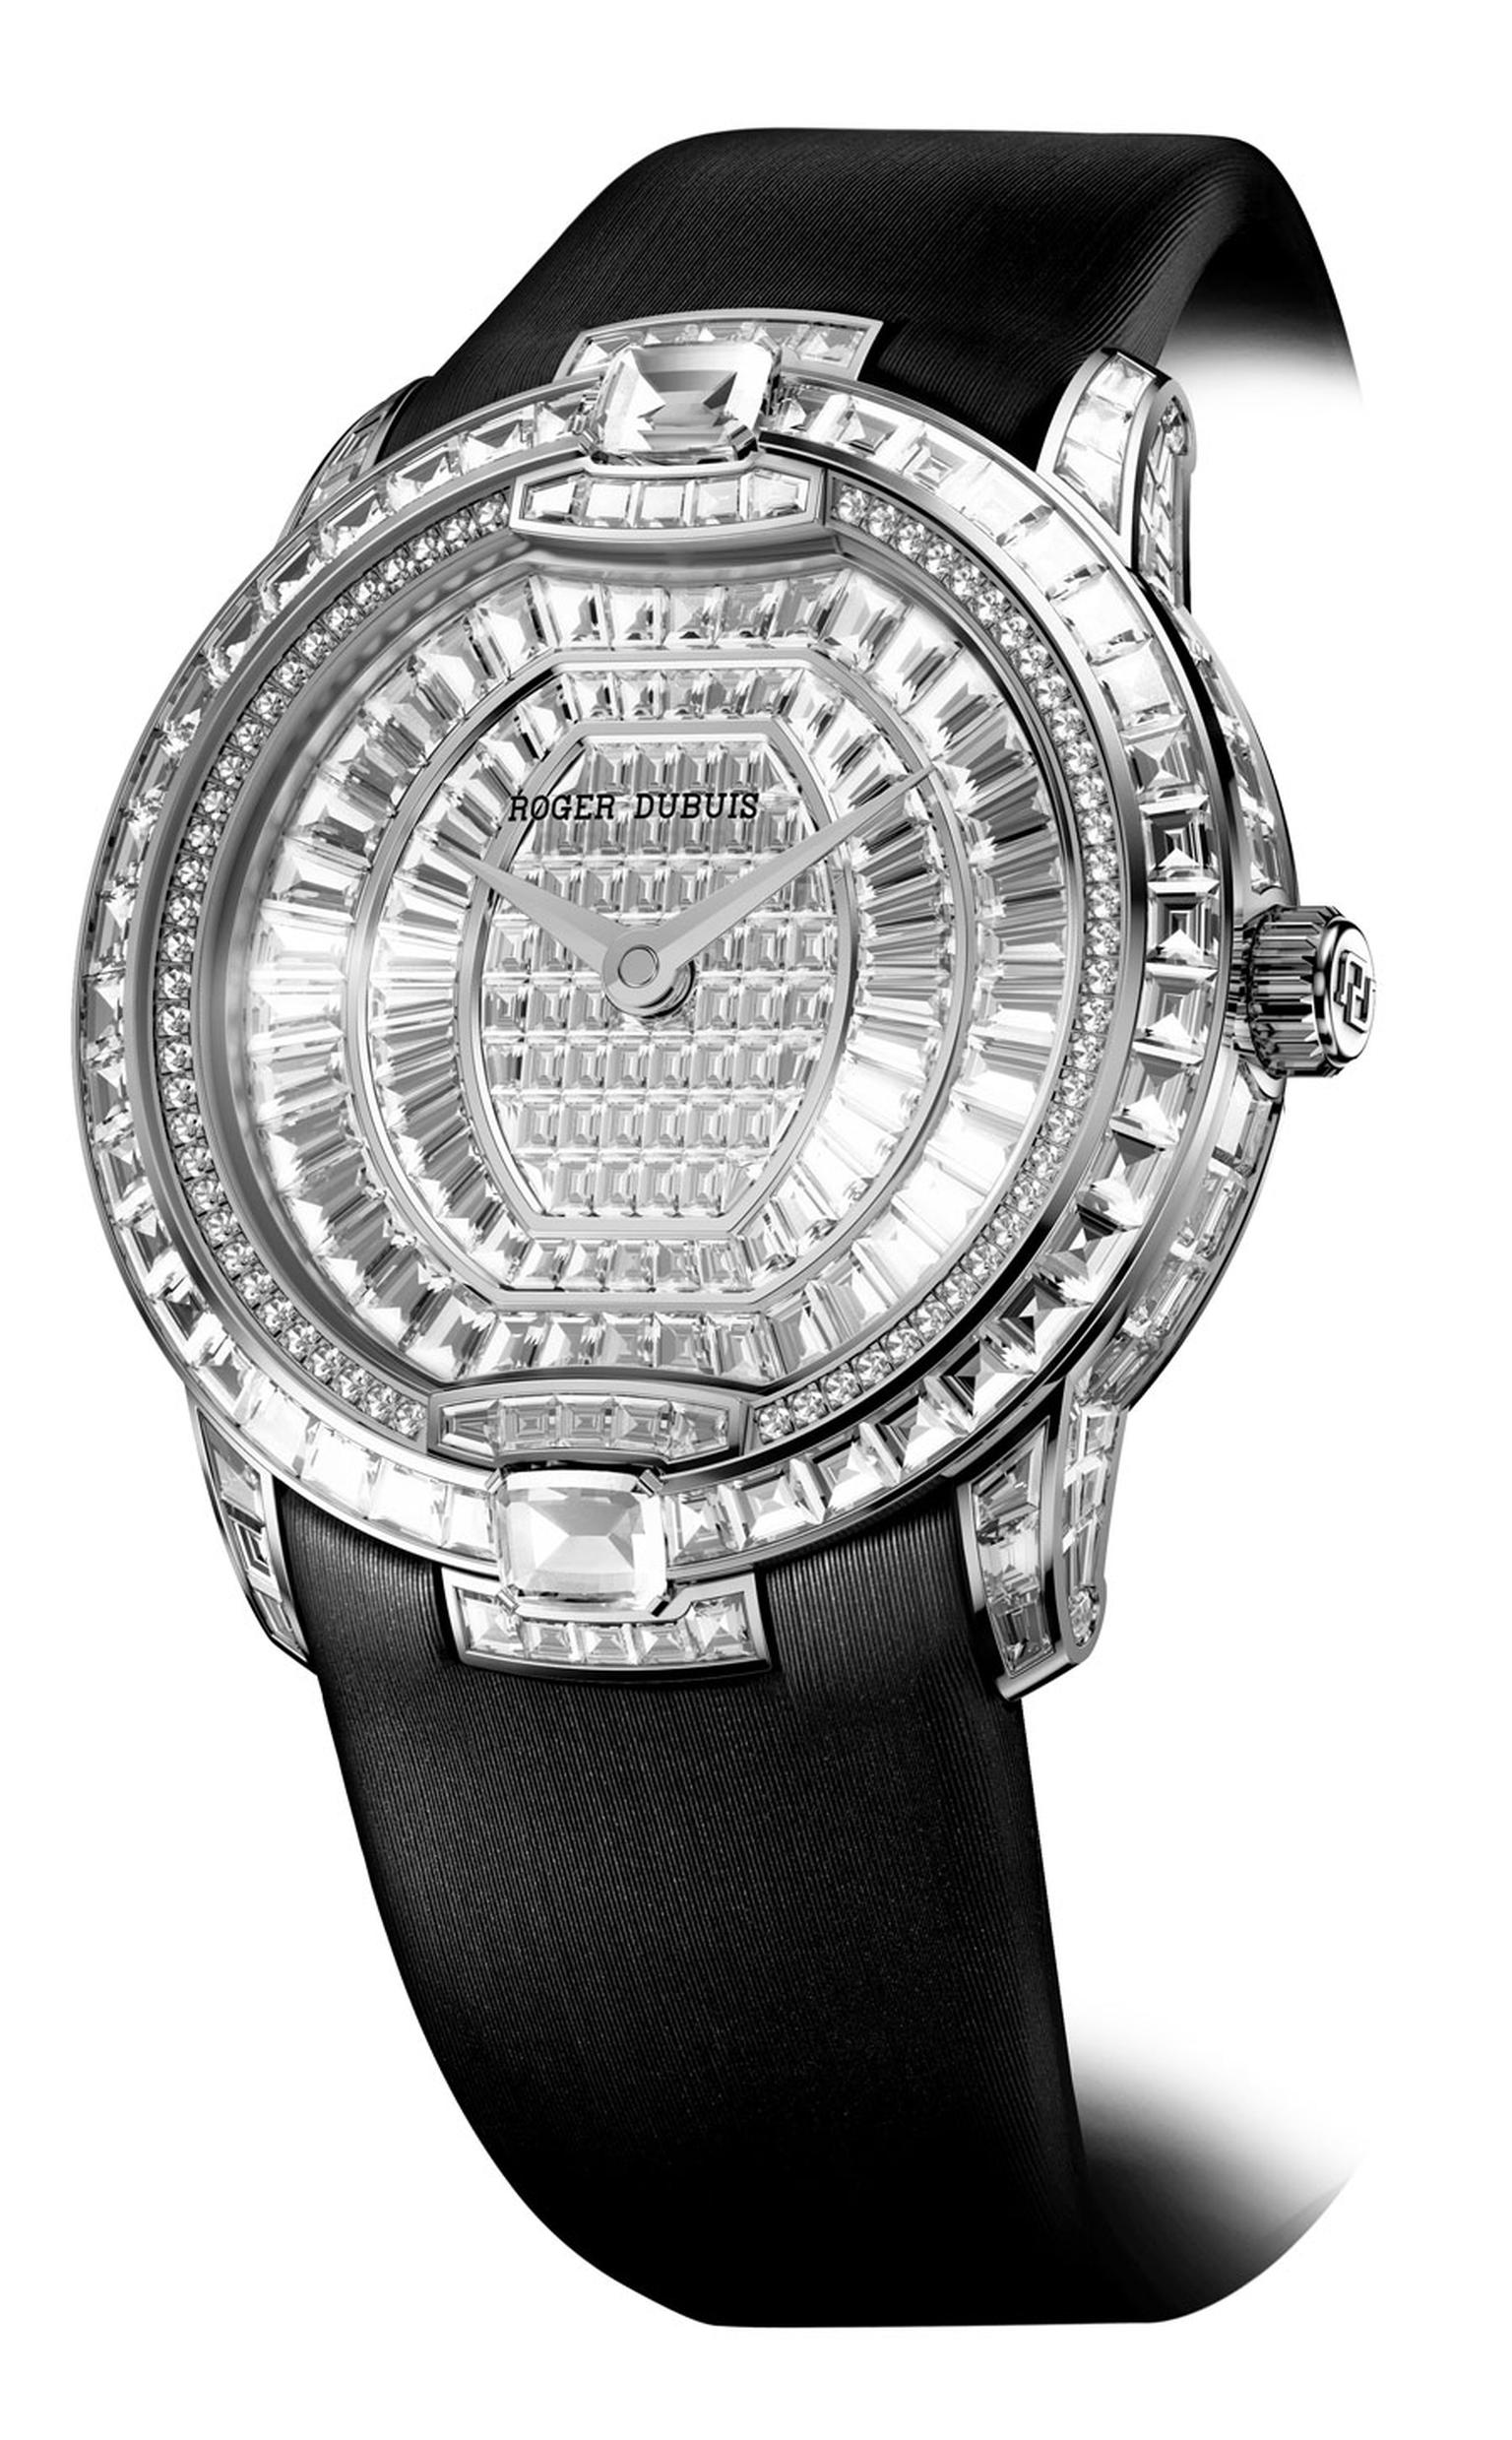 Roger-Dubuis-Velvet-High-Jewellery